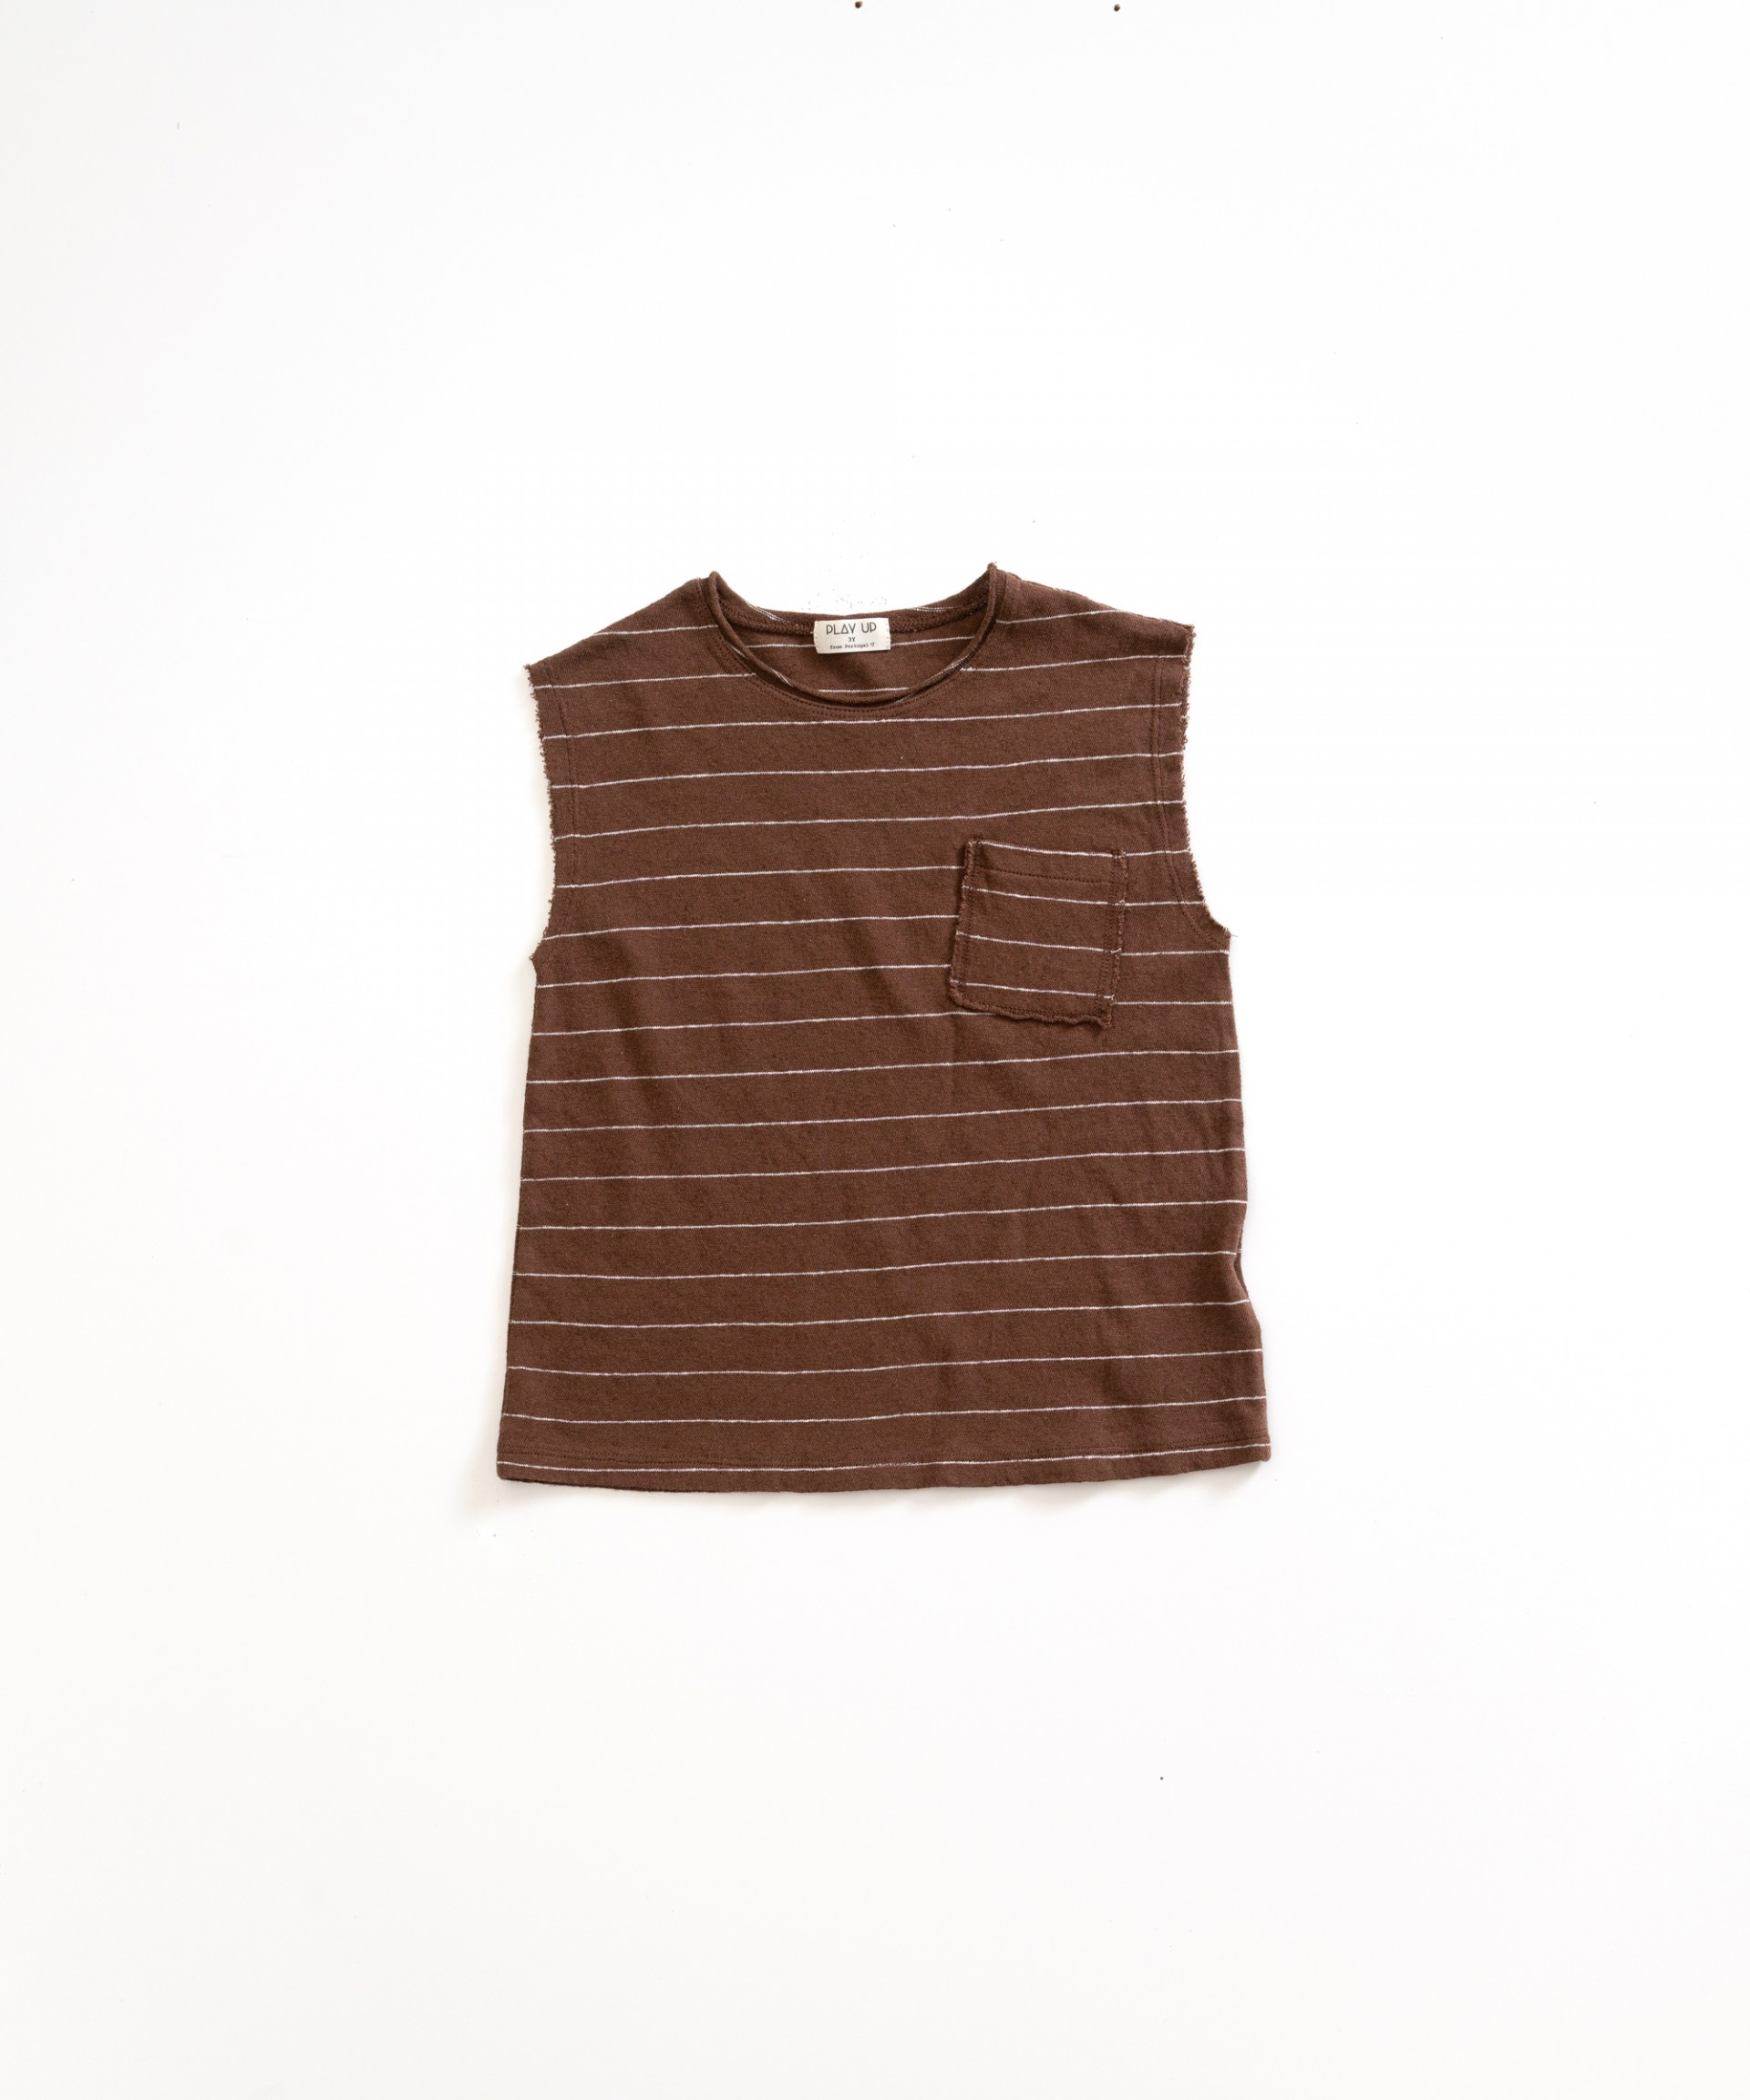 Sleeveless t-shirt in cotton-linen | Weaving